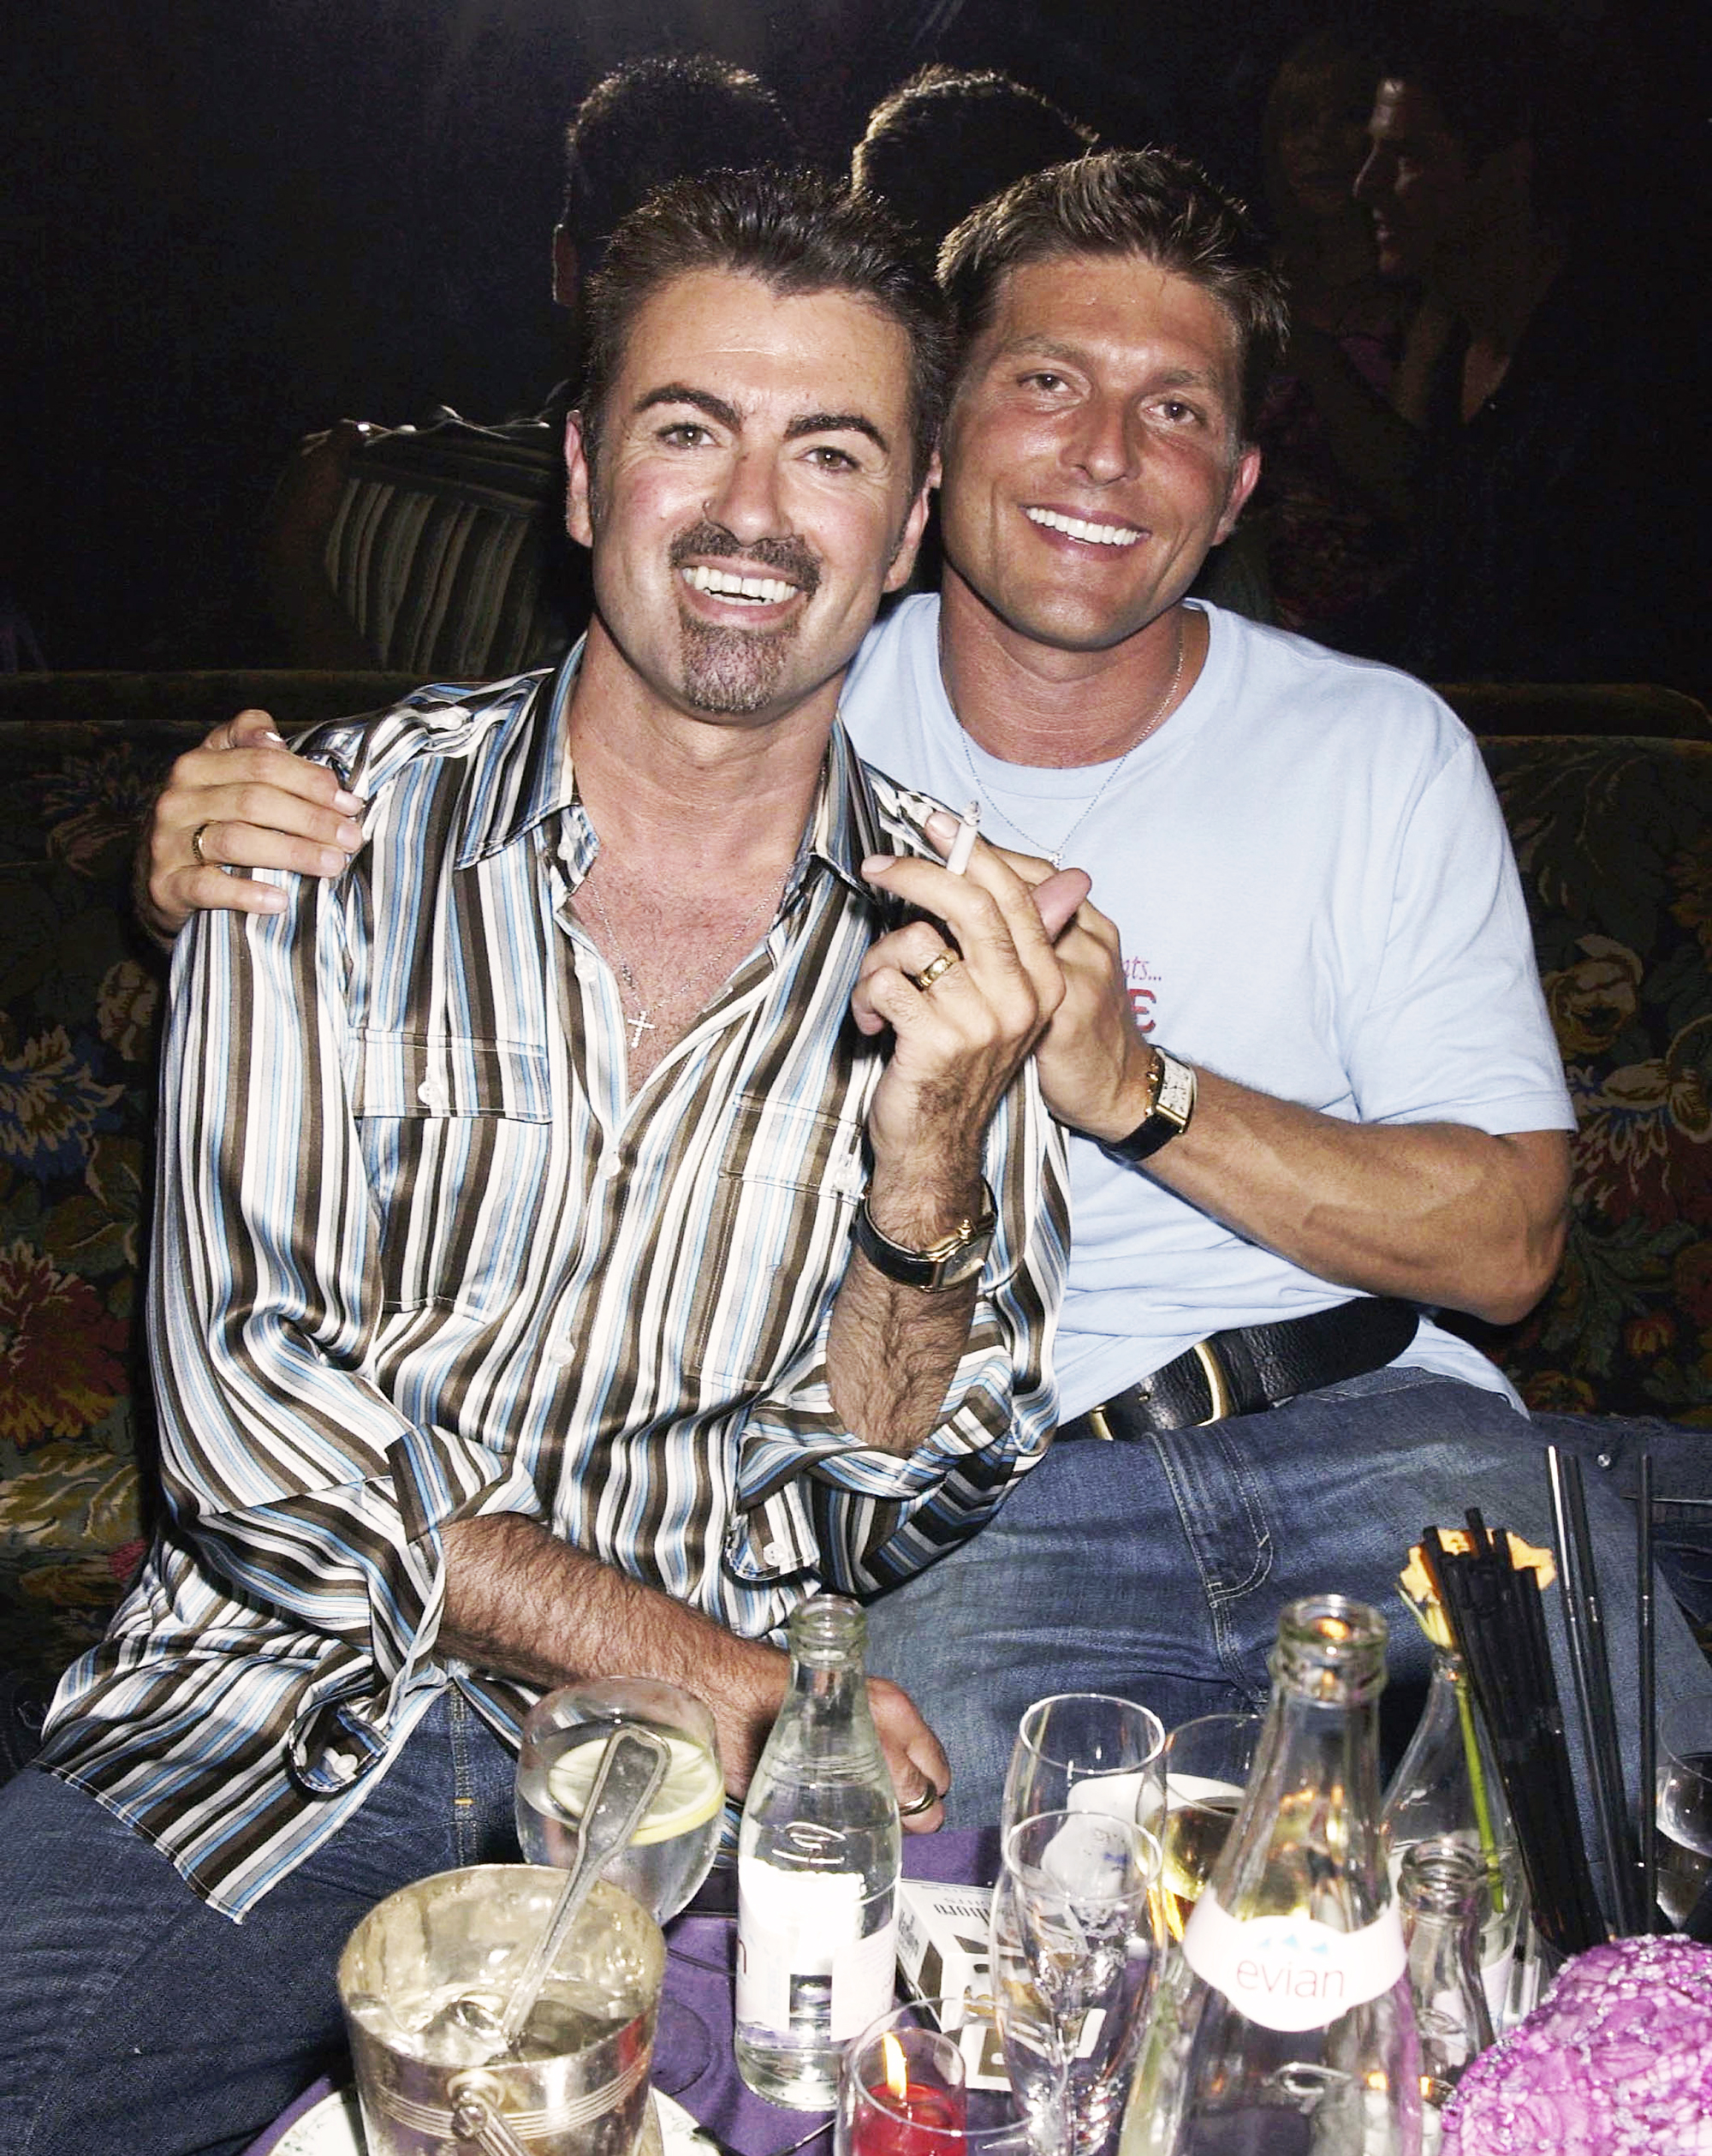 George Michael and partner Kenny Goss at the Versace Couture launch party in Paris, on July 9, 2002.